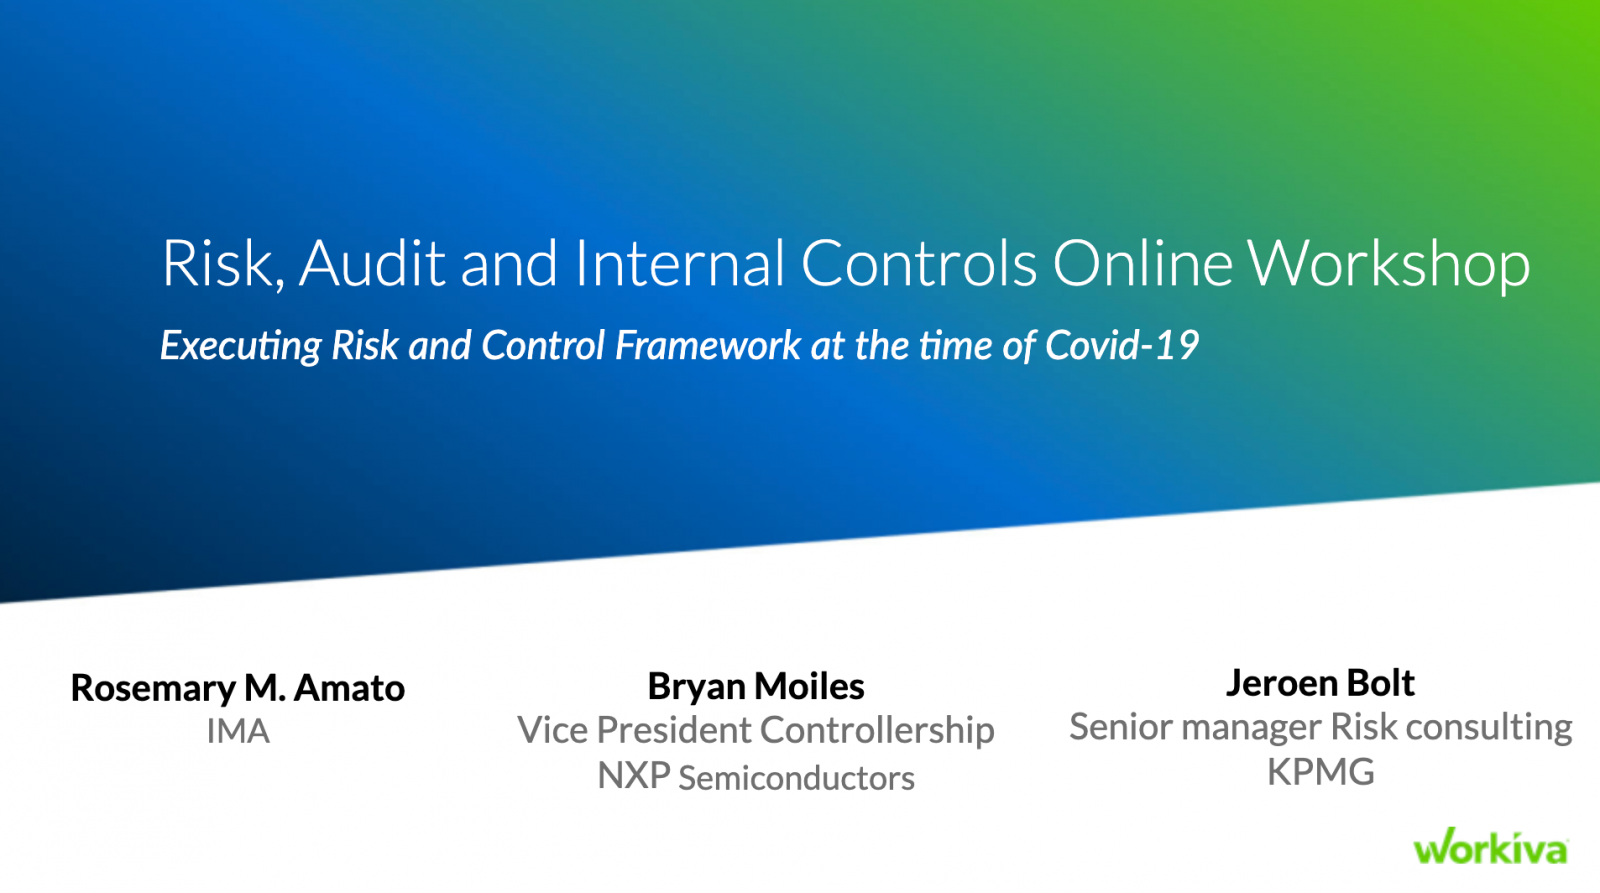 Risk Audit and Internal Controls Online Workshop